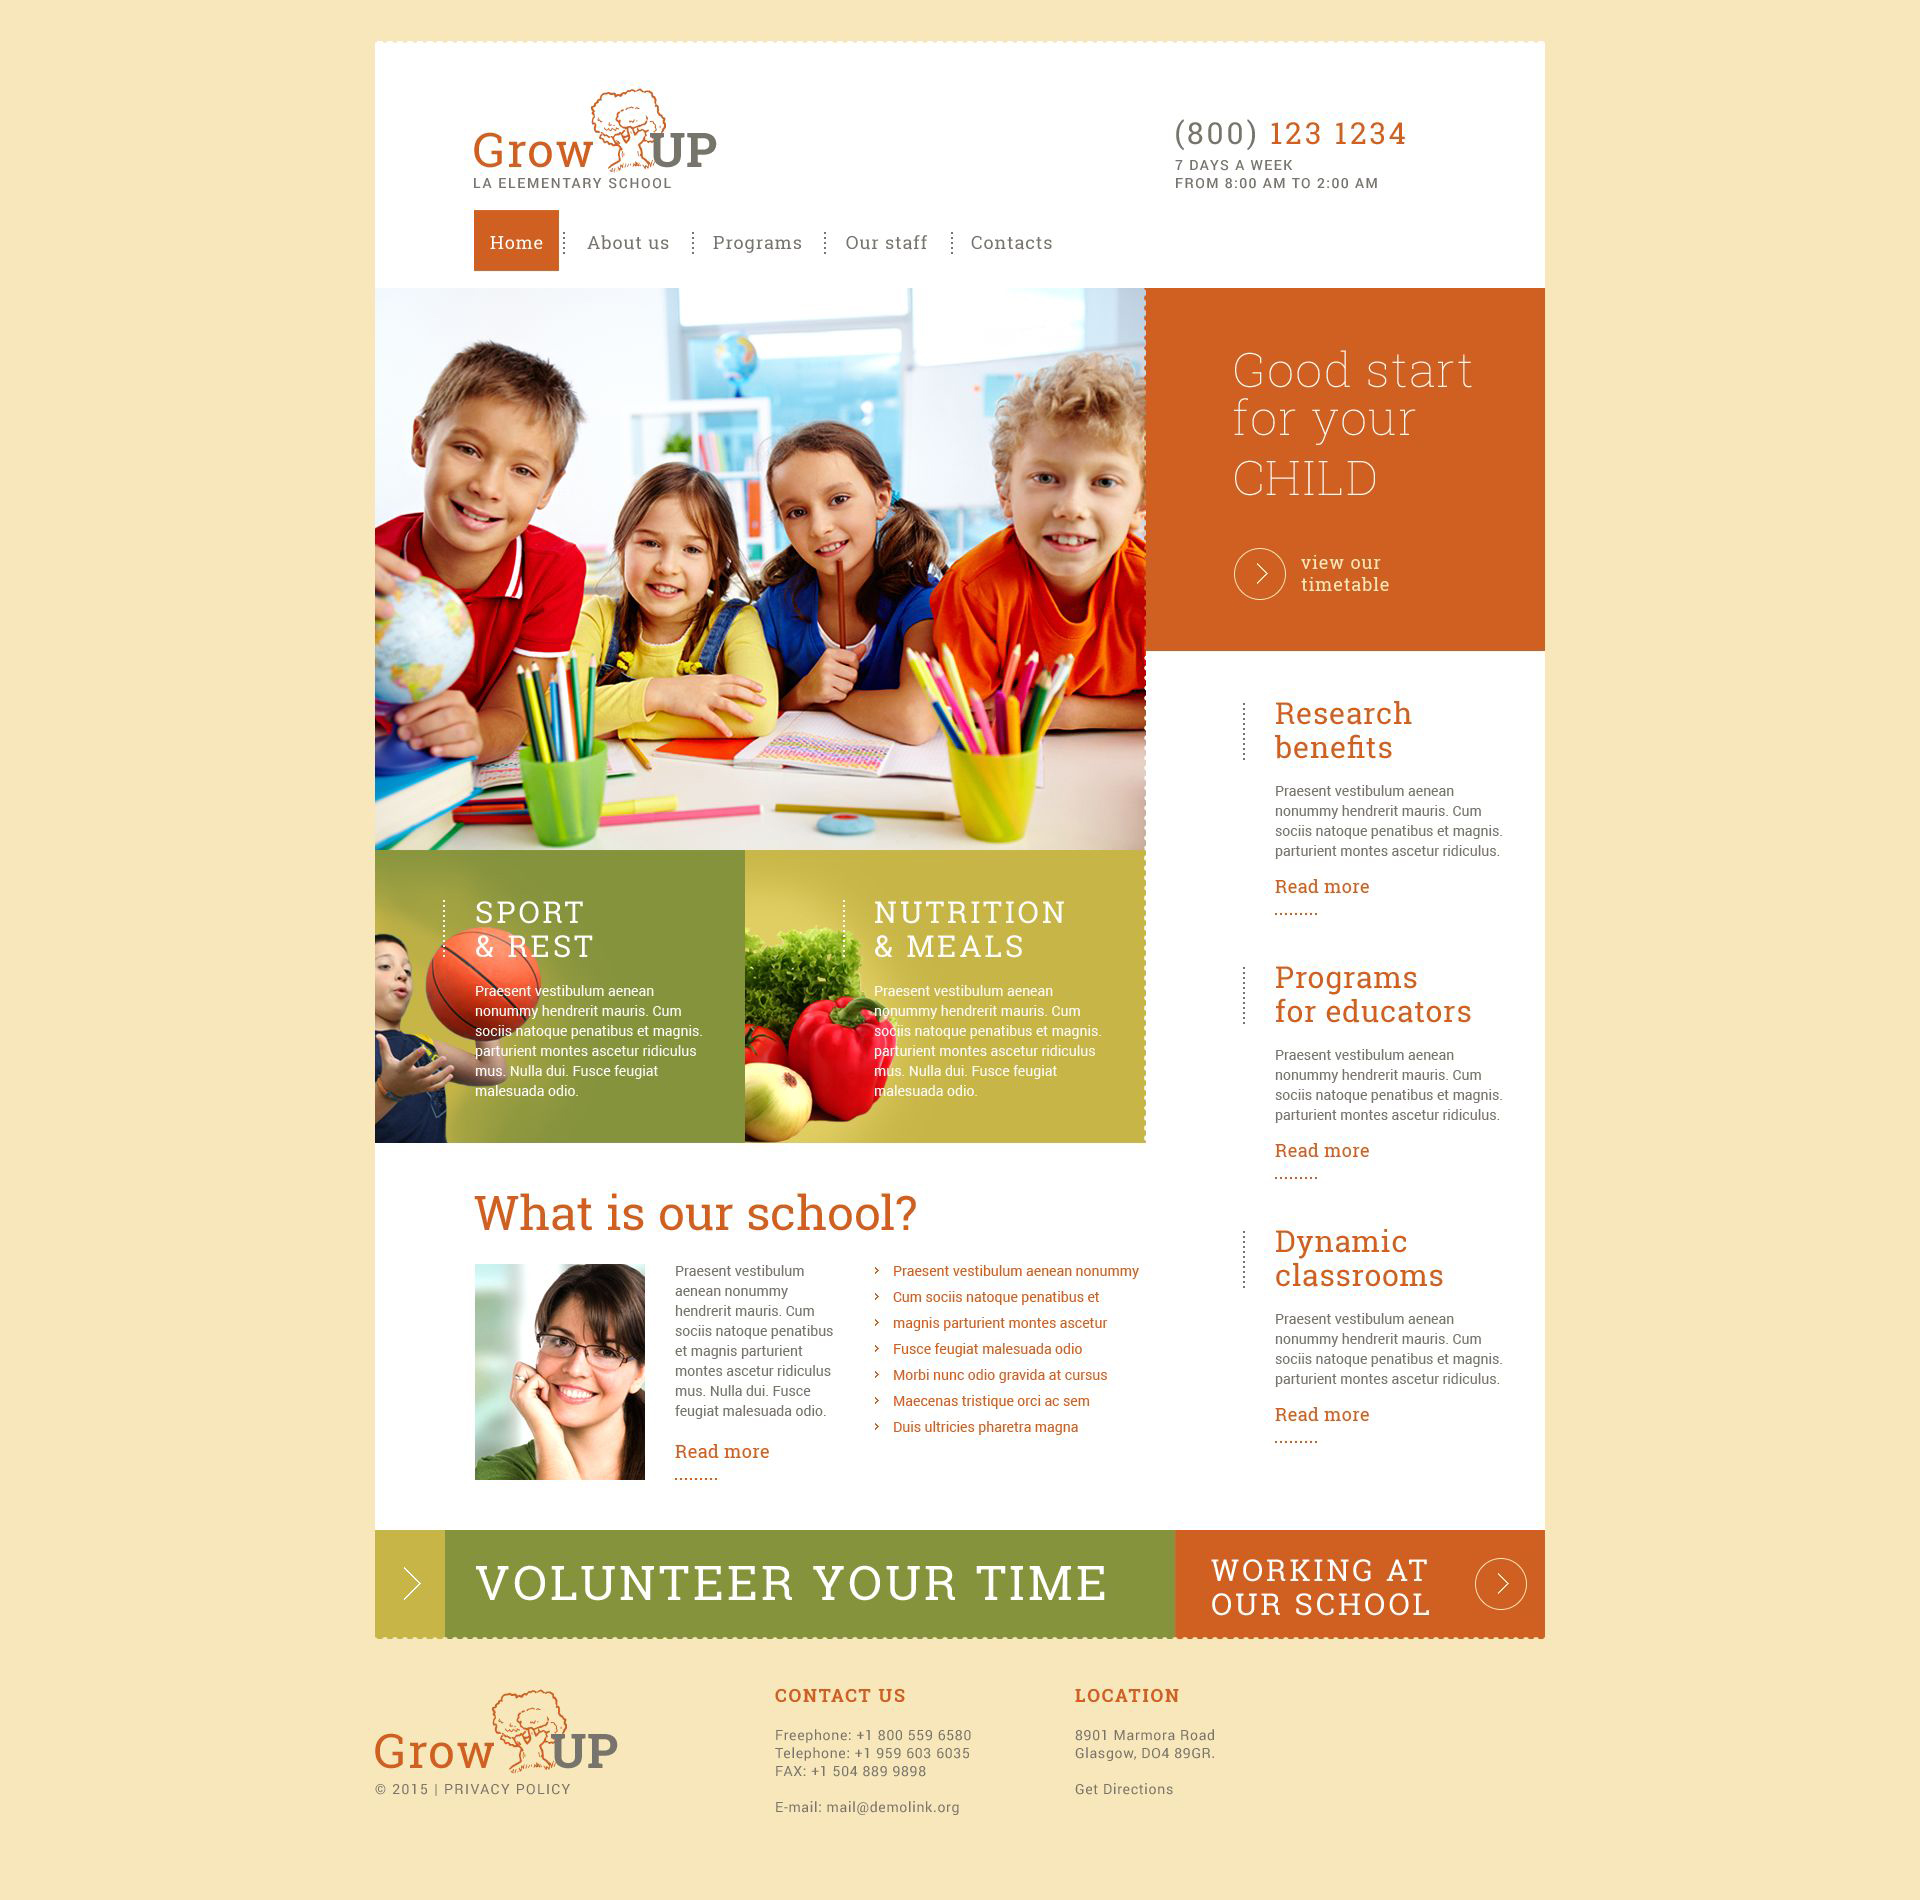 The Grow Up Elementary School Responsive Javascript Animated Design 53289, one of the best website templates of its kind (education, most popular), also known as Grow up elementary school website template, education center website template, college website template, science website template, admission website template, faculty website template, department website template, class website template, alumni website template, student website template, professor website template, enrolment website template, union website template, library website template, auditorium website template, graduate website template, direction website template, tests website template, entrance website template, examination website template, exam website template, sport website template, community website template, party website template, administration website template, rector website template, head website template, dean website template, coll and related with Grow up elementary school, education center, college, science, admission, faculty, department, class, alumni, student, professor, enrolment, union, library, auditorium, graduate, direction, tests, entrance, examination, exam, sport, community, party, administration, rector, head, dean, coll, etc.